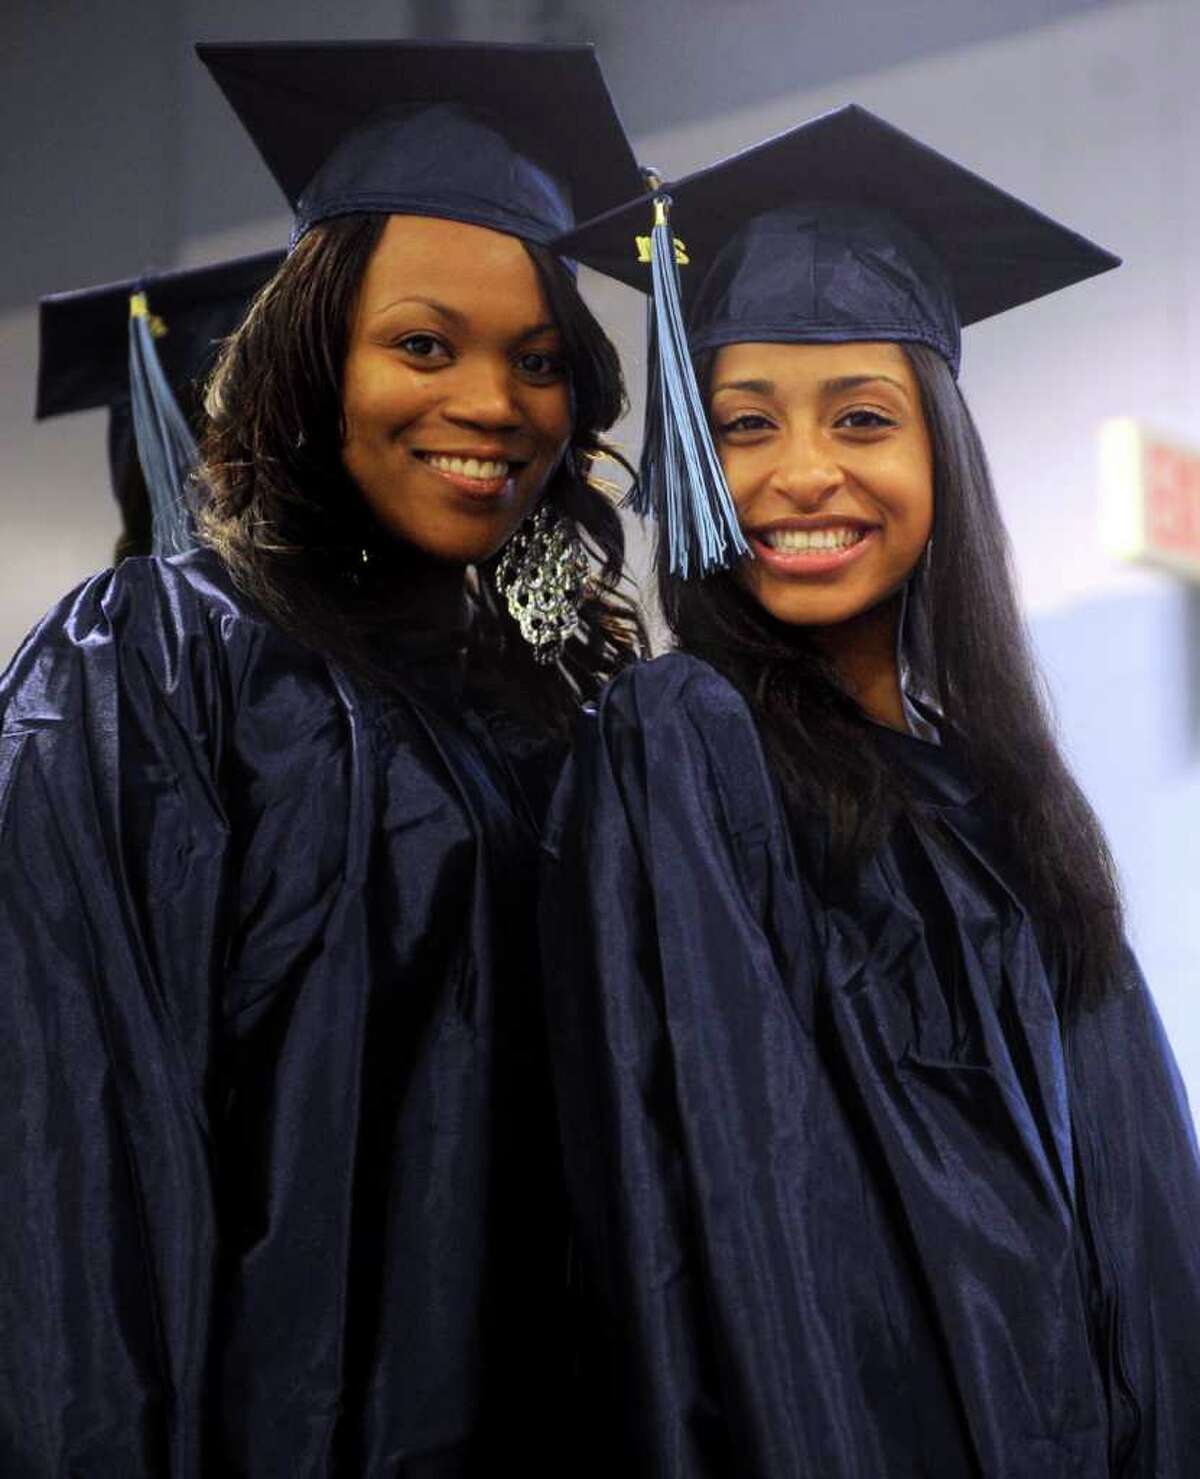 Desirae Williams of Stratford, left, and Marissa Ortiz of Oxford pose for a photo before the processional begins during Housatonic Community College graduation at the Webster Bank Arena at Harbor Yard on Thursday, May 26, 2011.